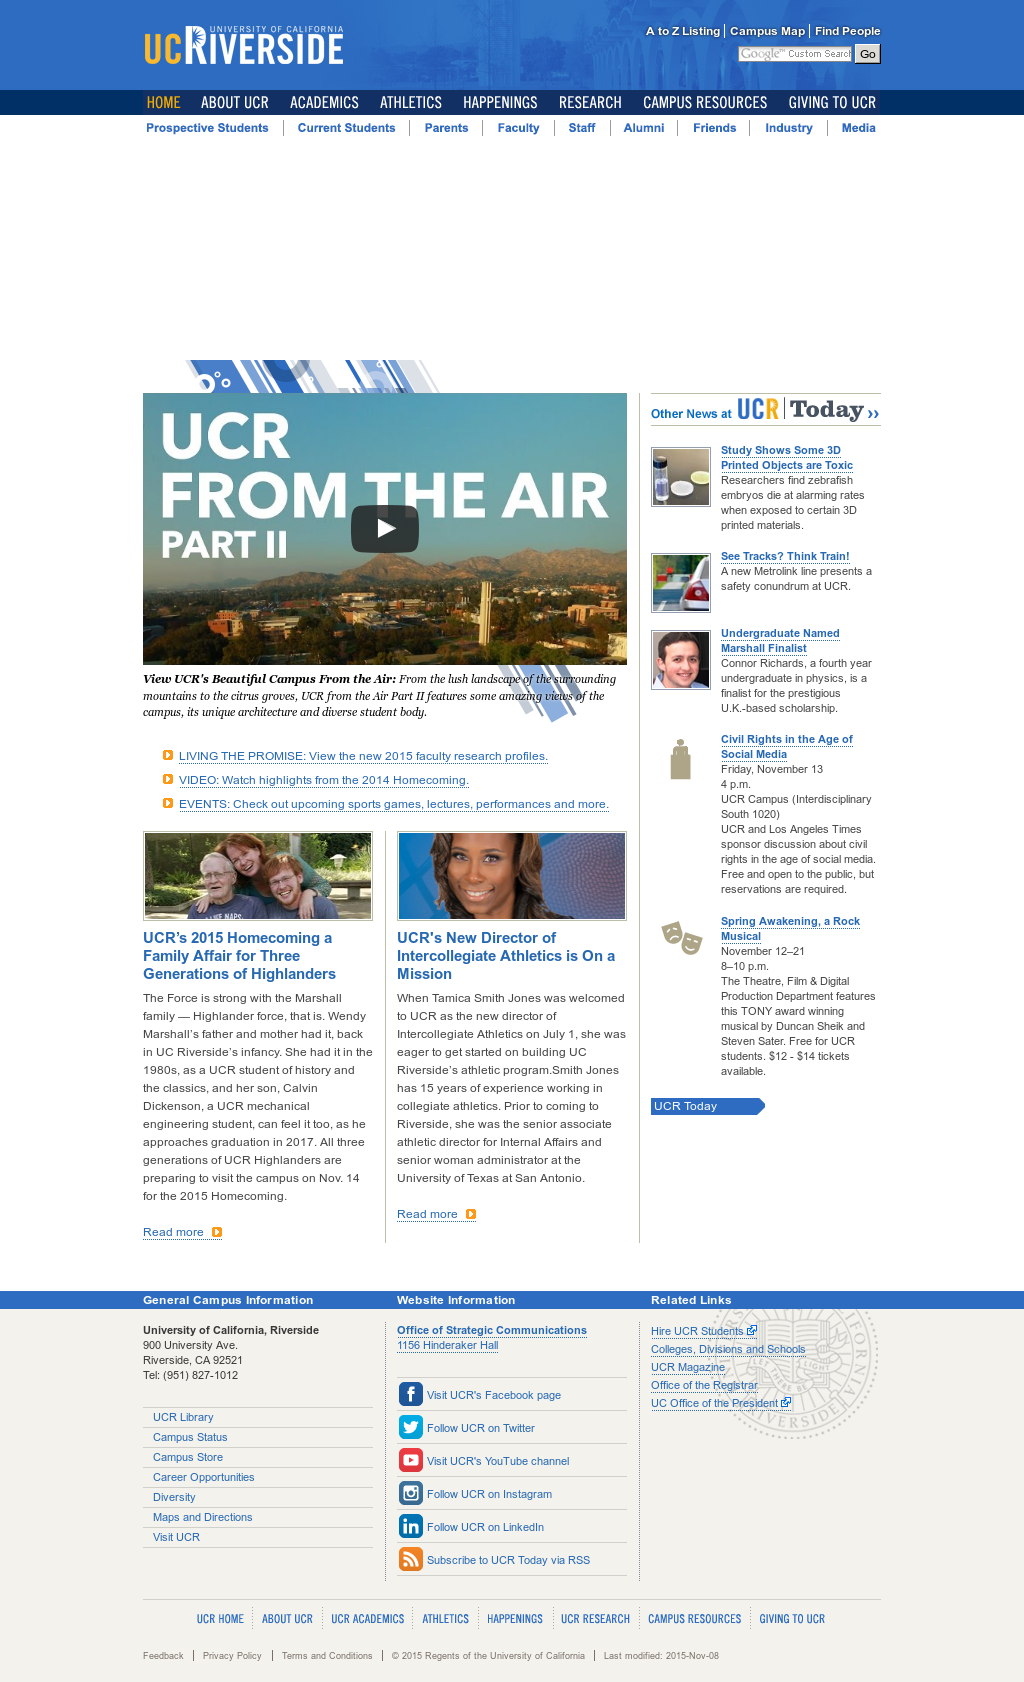 The University of California, Riverside Compeors, Revenue ... on west liberty university map, ucr graduation, ucr financial aid, ucr baseball field, ucr botanical gardens, ucr map california, ucr dorms, ucr colors, ucr classroom, ucr bell tower, ucr arts building map, ucr famous alumni, ucr hinderaker hall, ucr virtual tour, moreno valley college map, ucr athletics, ucr career center, ucr library, ucr bookstore,